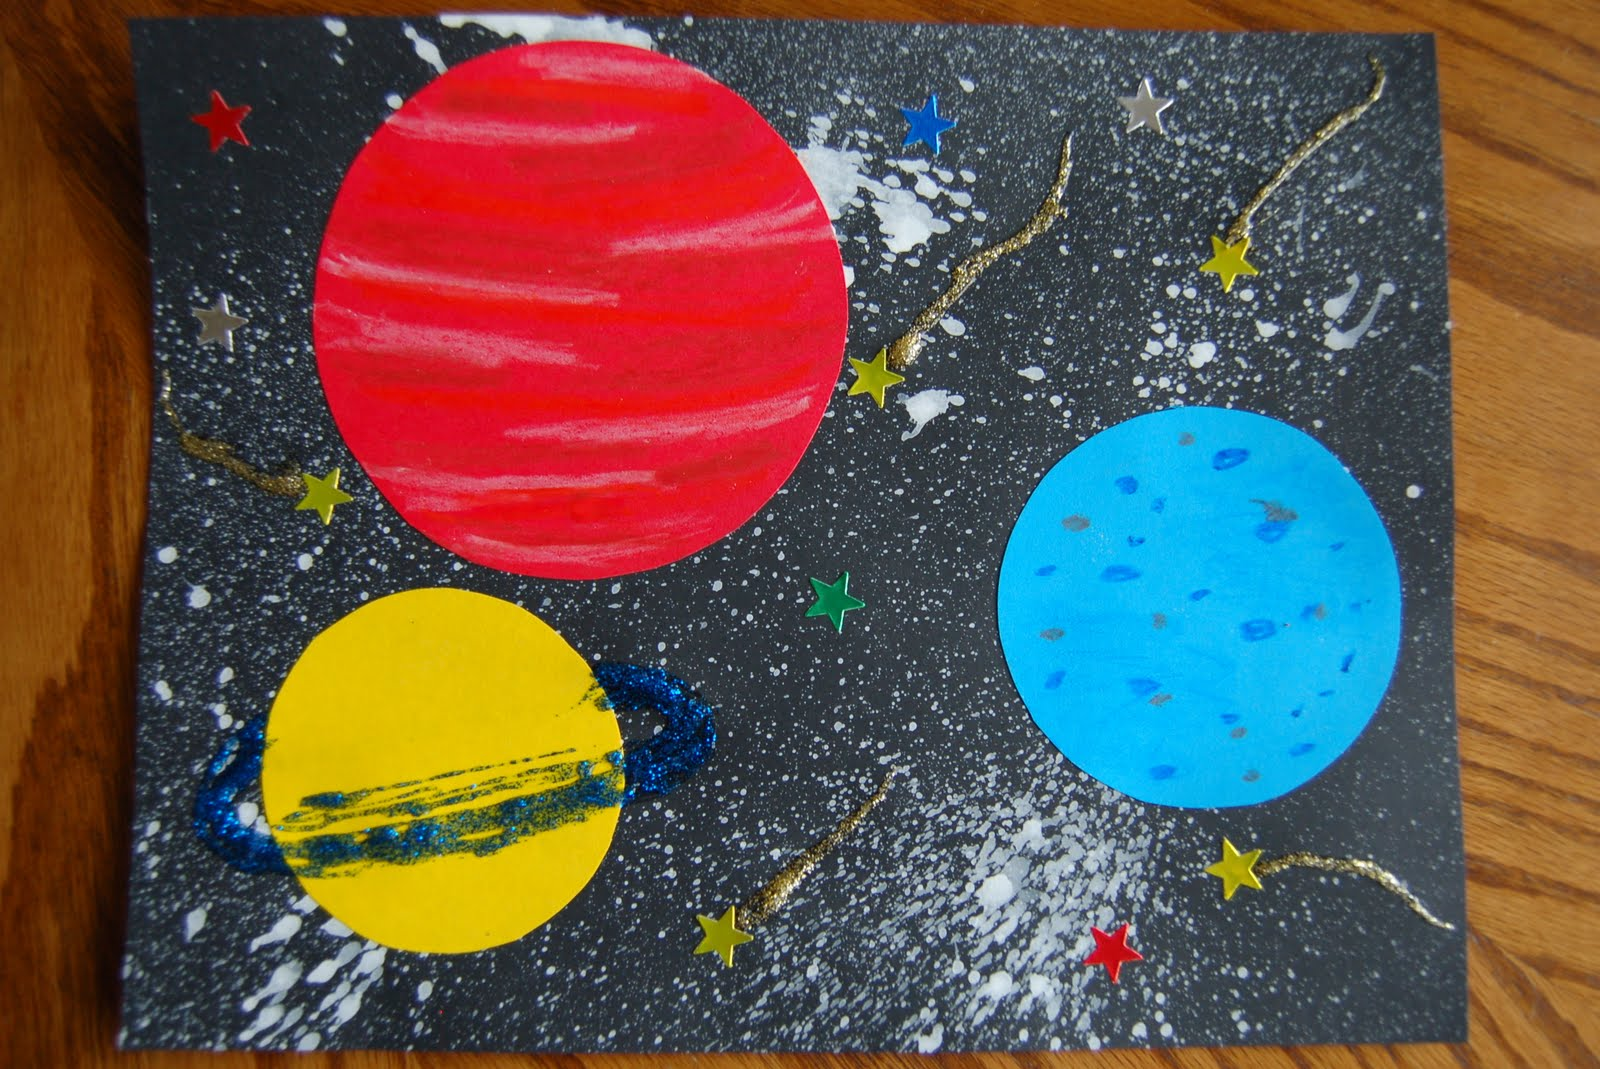 constellations project space art spacecraft - photo #28